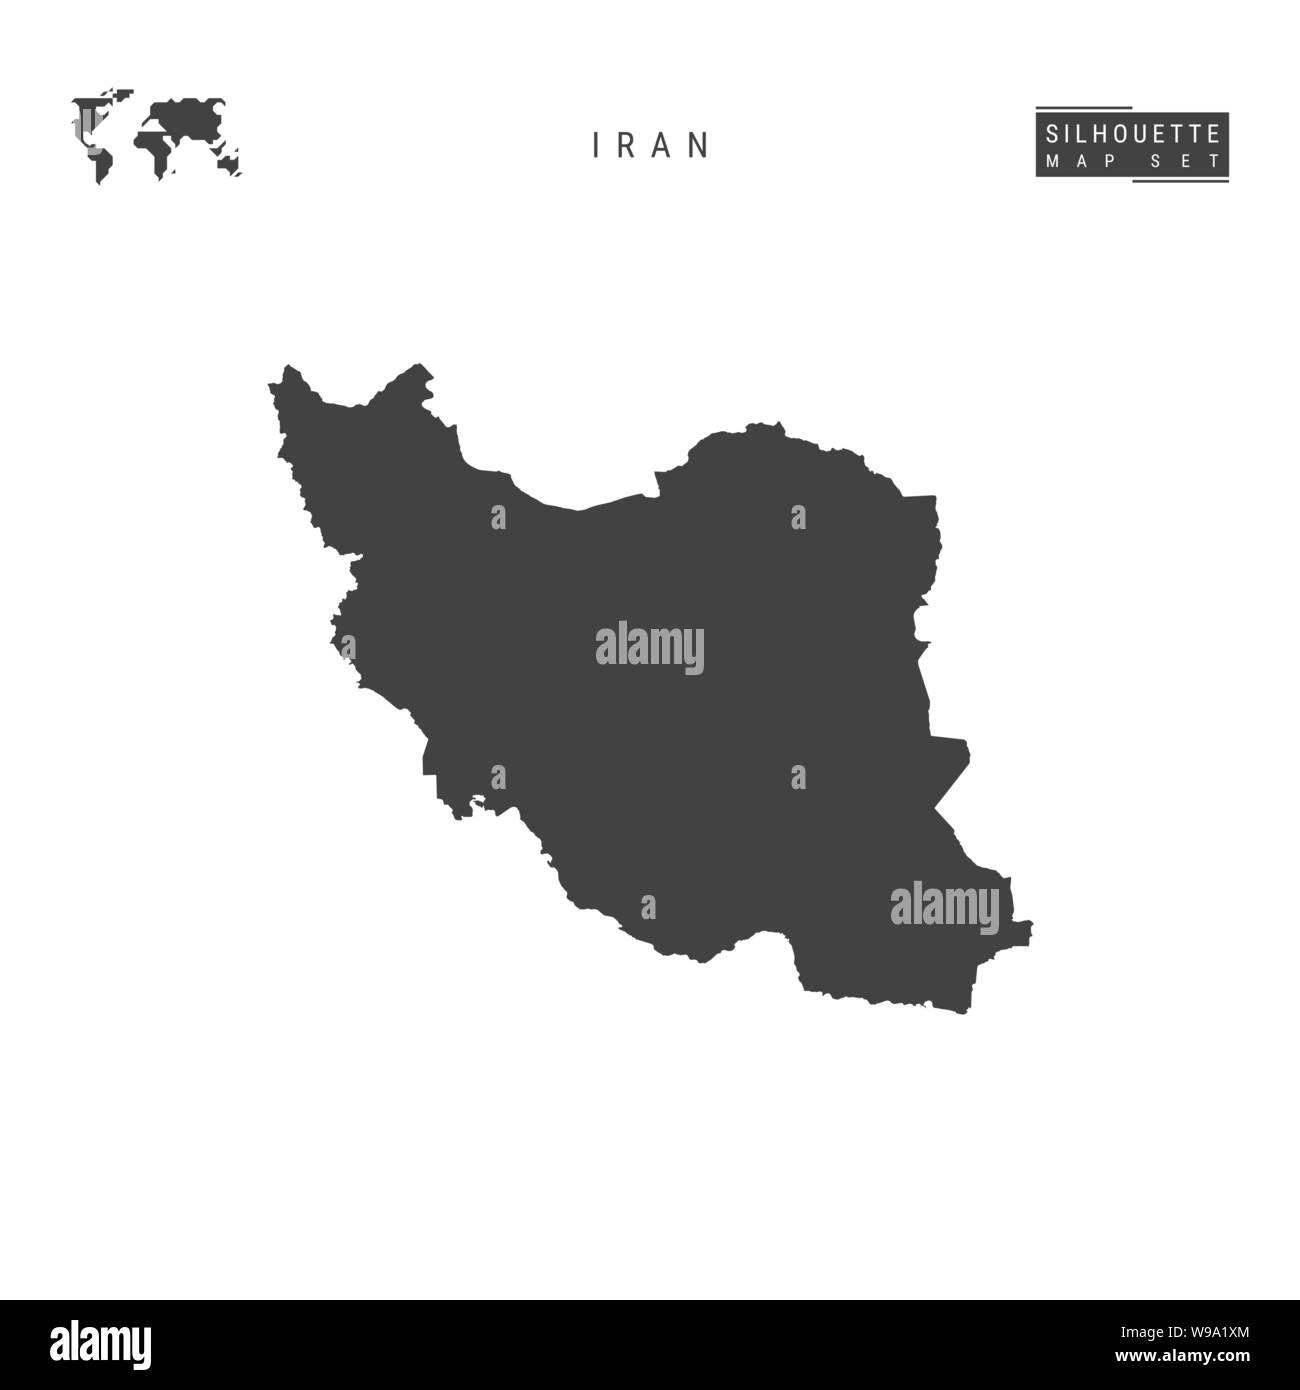 Iran Blank Vector Map Isolated on White Background. High-Detailed Black Silhouette Map of Iran. Stock Vector